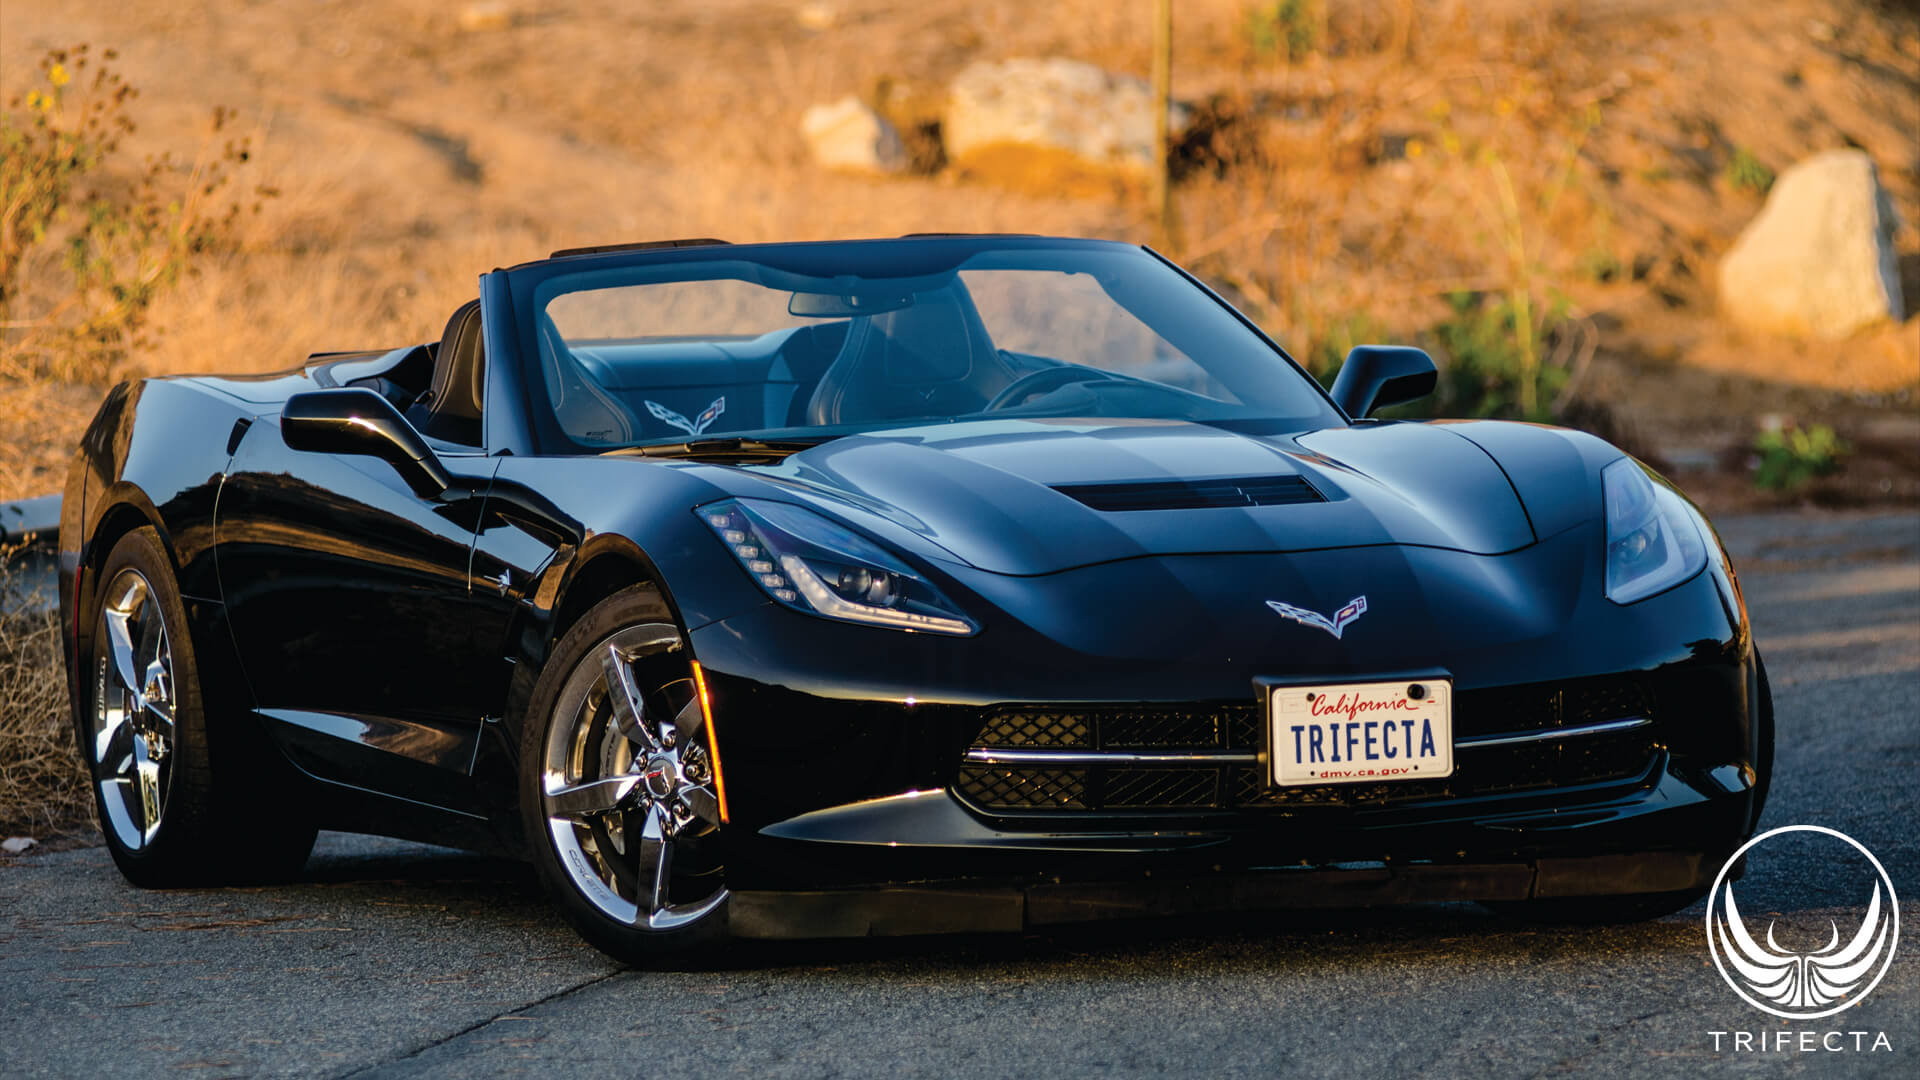 Product Review: 2014--2017 Chevrolet Corvette - 6.2L - Advantage